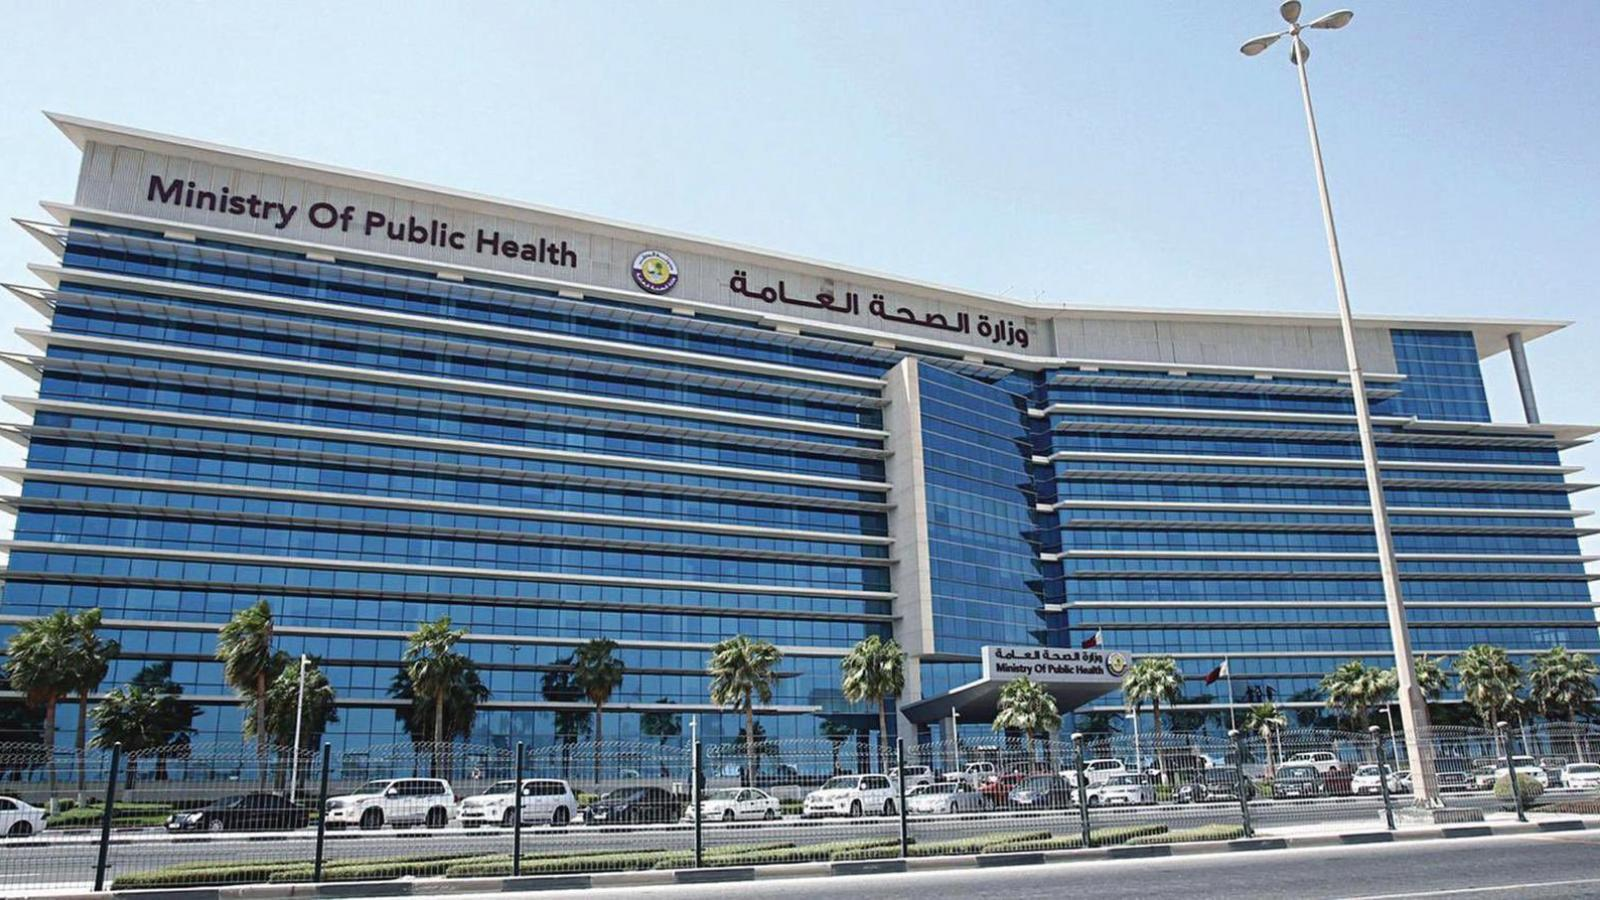 MoPH highlights safe practices to follow as Qatar lifts COVID-19 restrictions